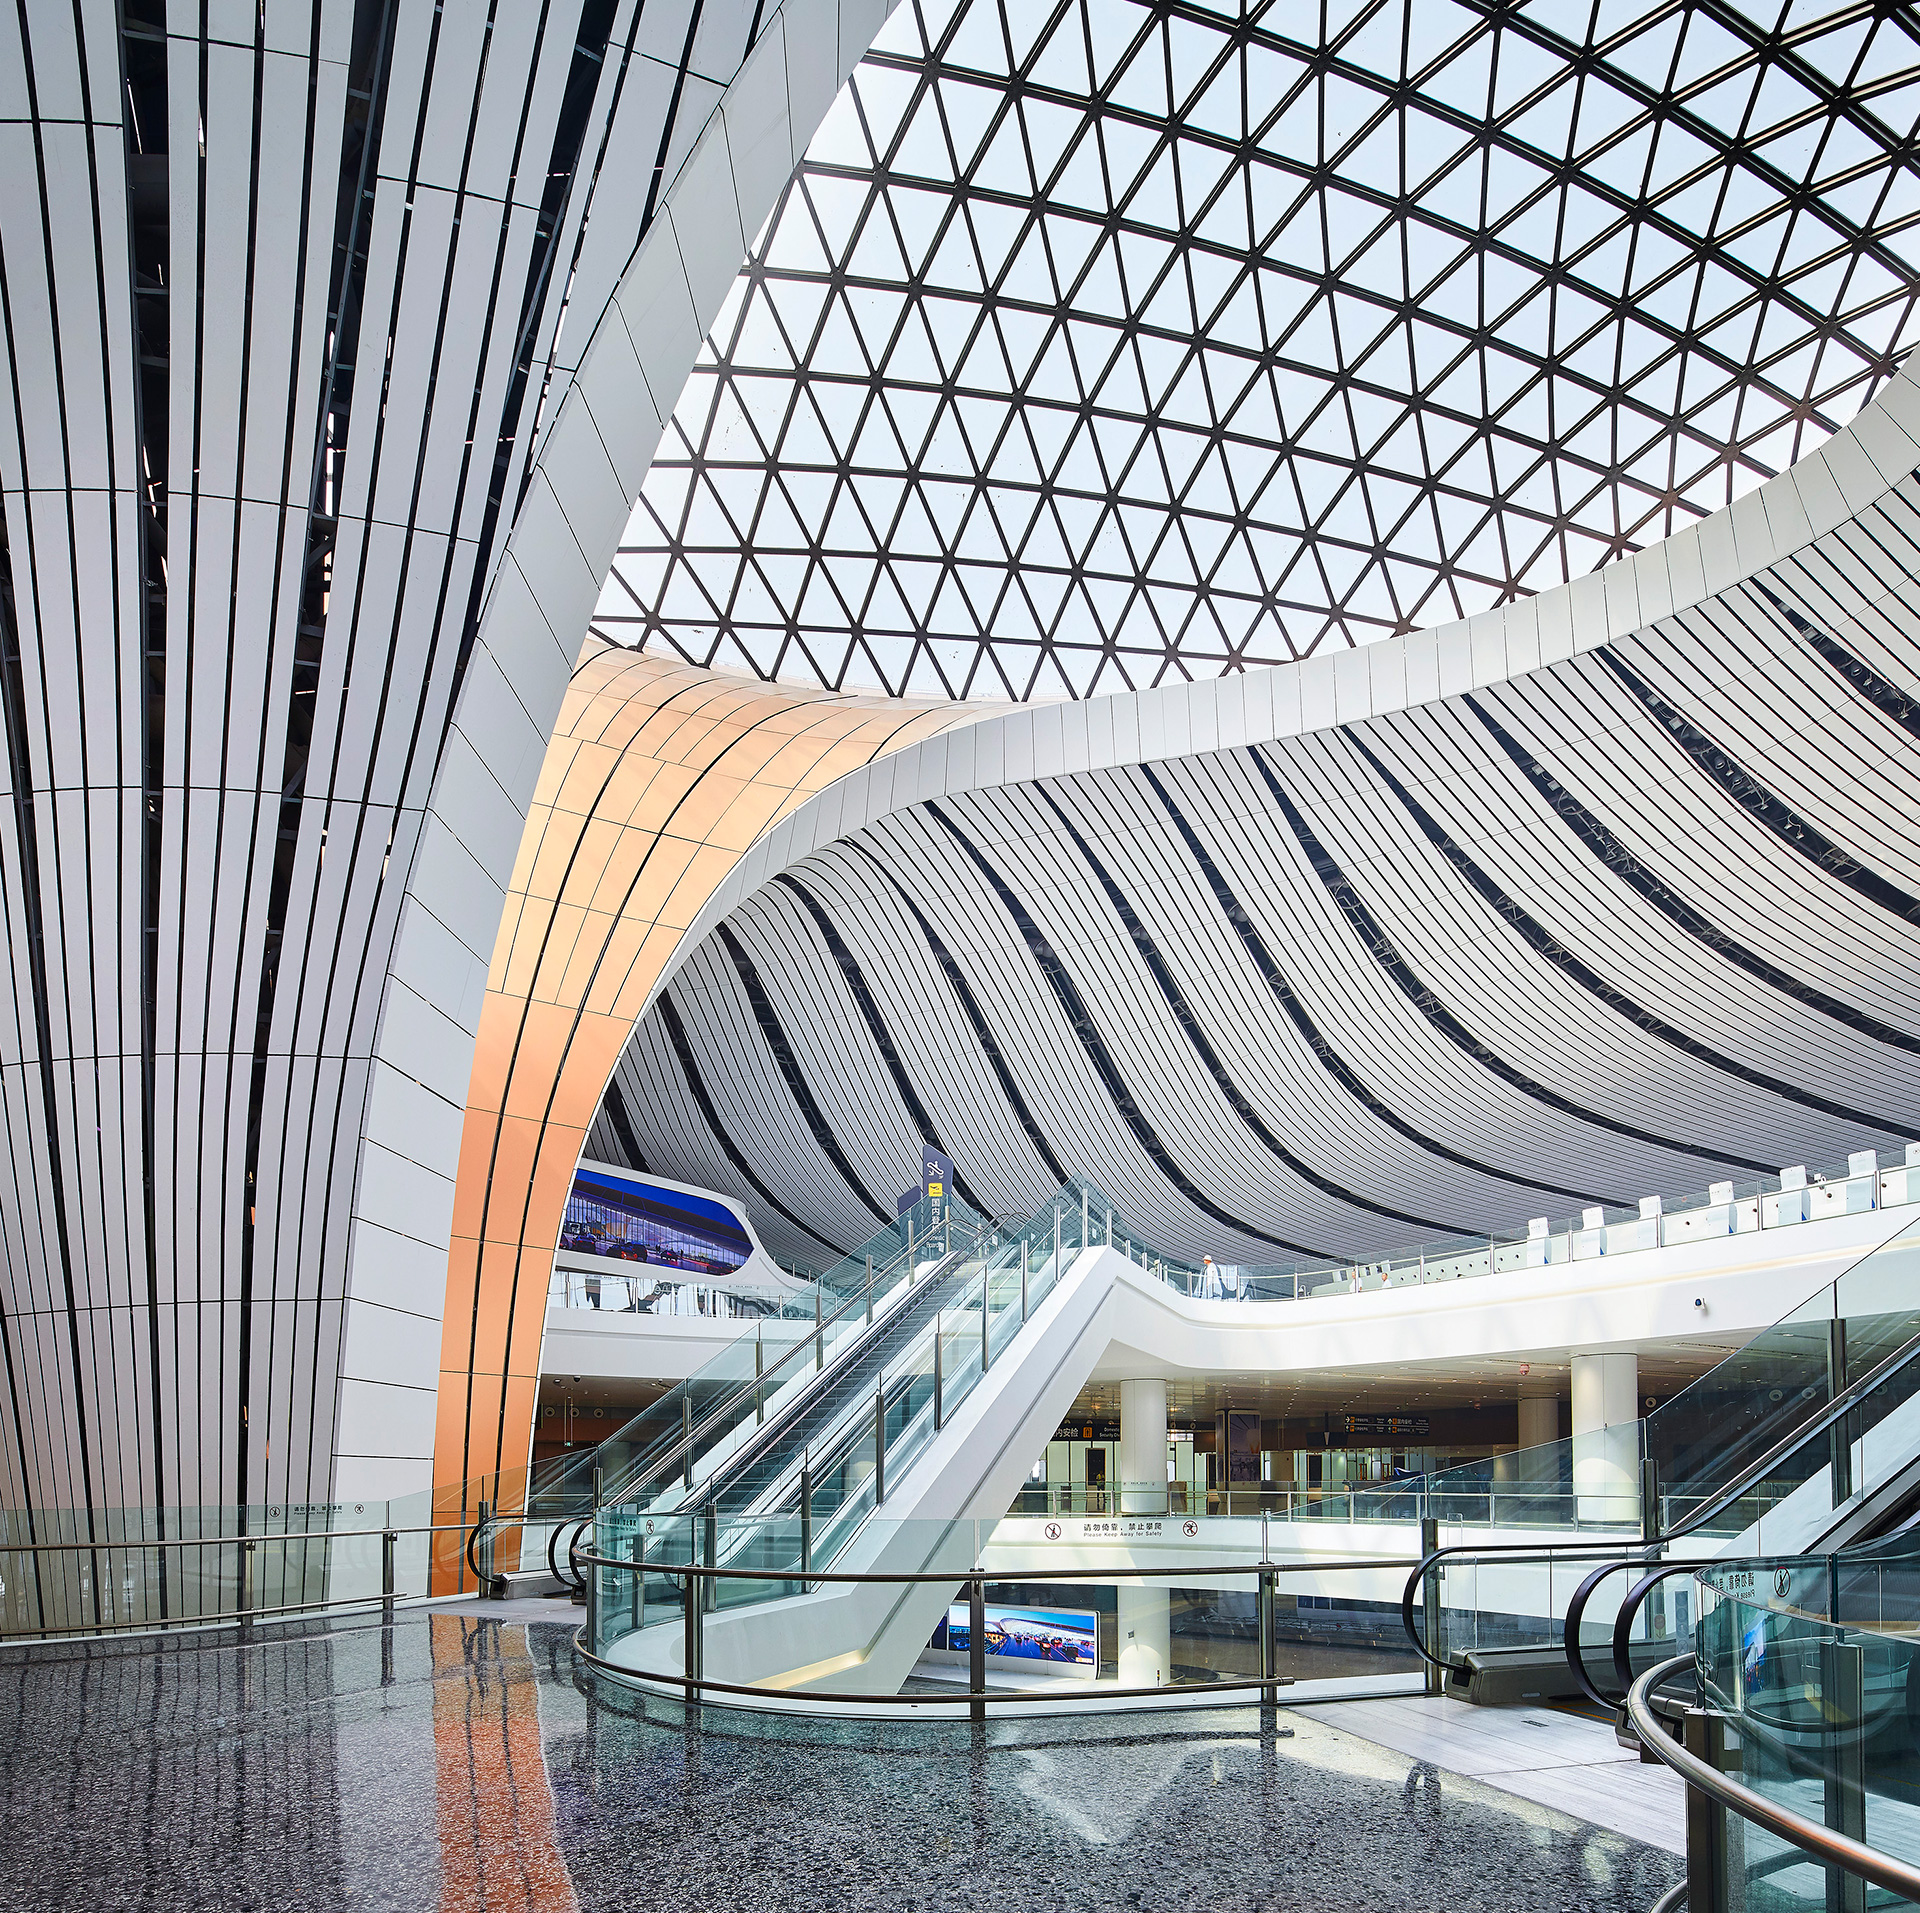 One of the six fluid structural forms supporting the vaulted roof lets natural night in | Beijing Daxing International Airport | Zaha Hadid Architects | STIRworld